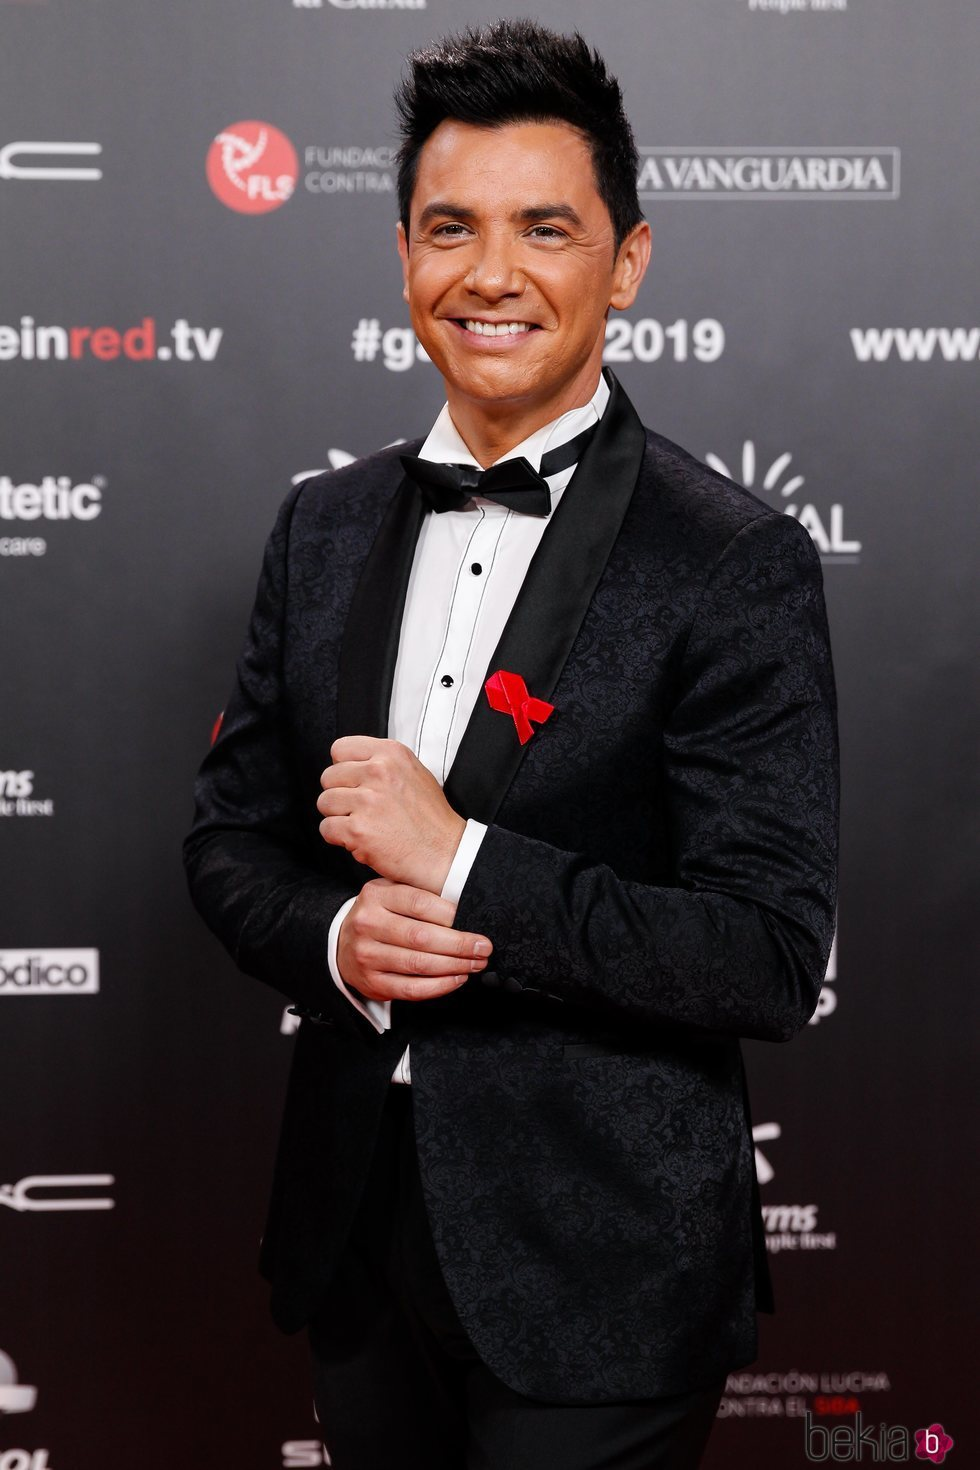 David Civera en la gala People in Red 2019